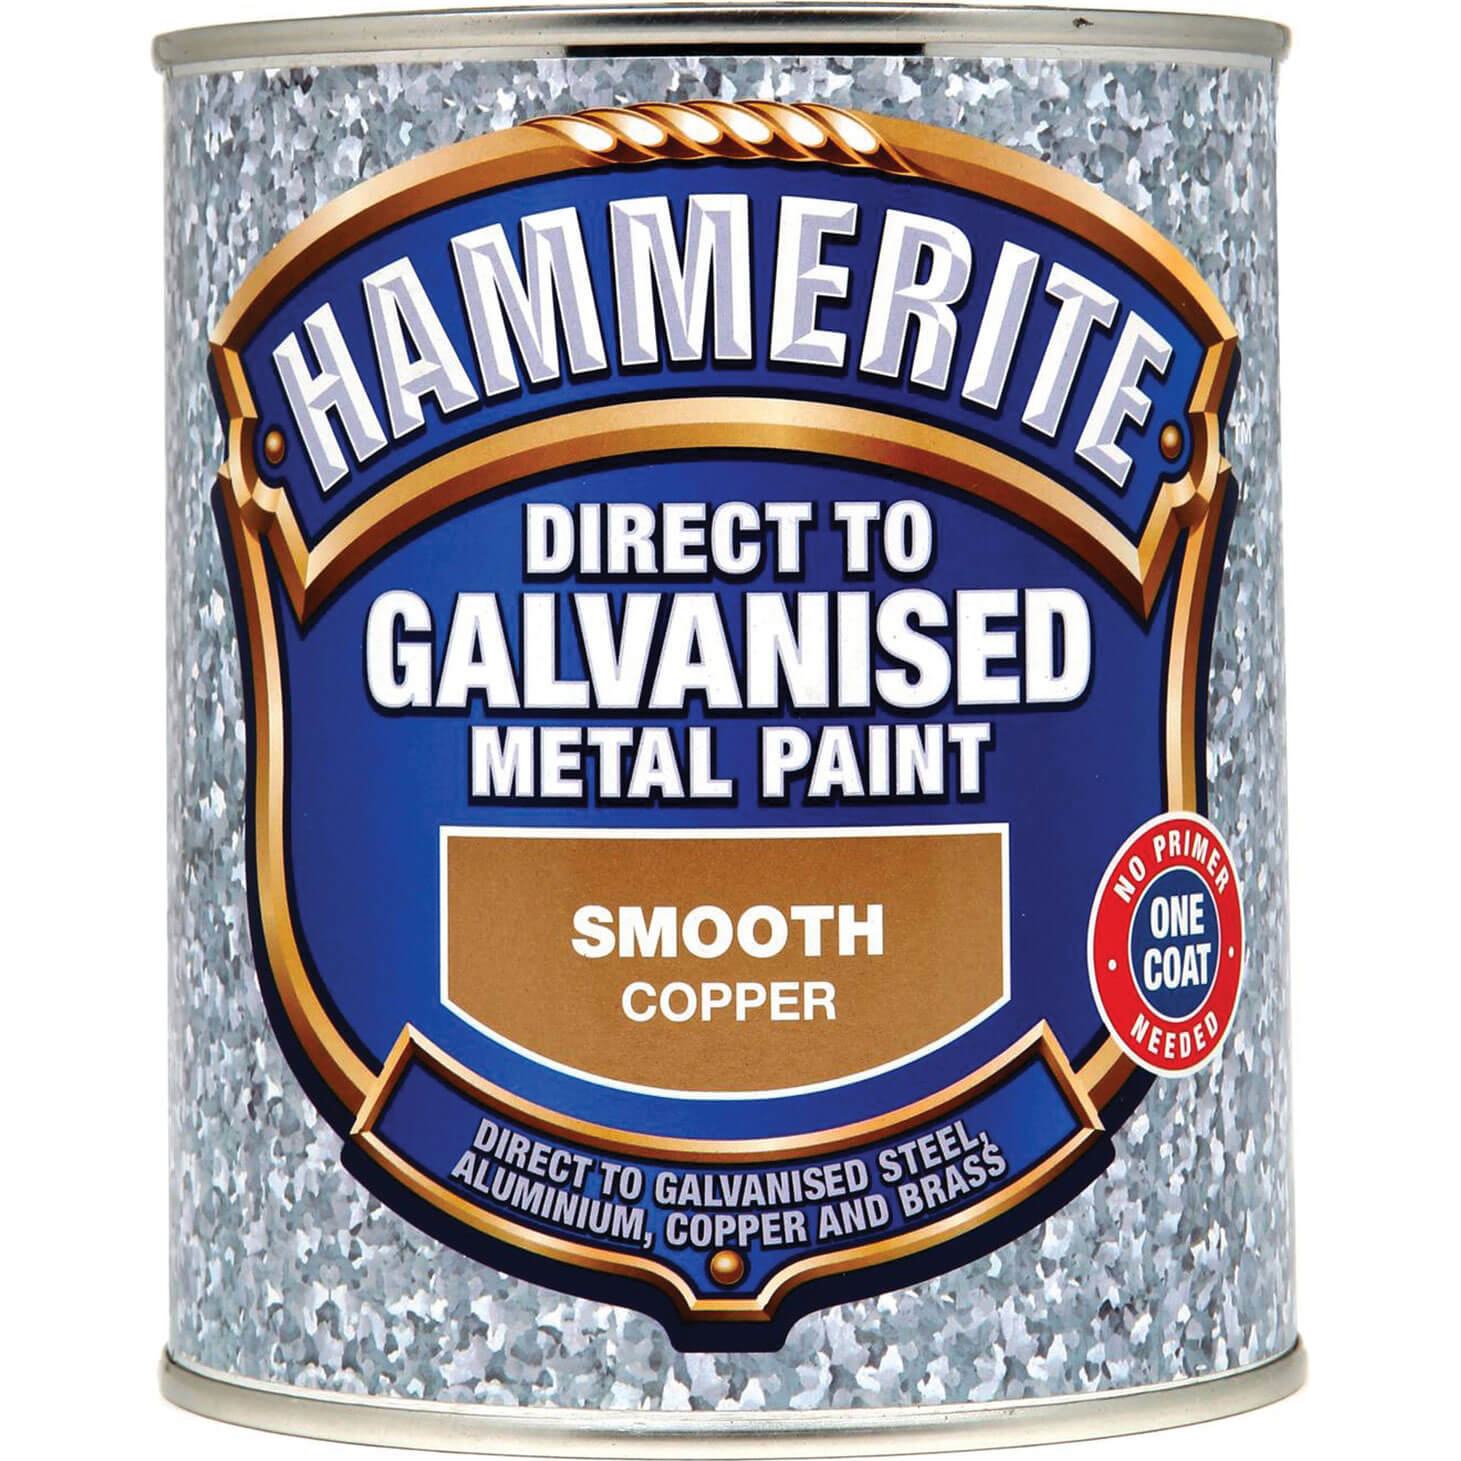 Hammerite Direct To Galvanised Metal Paint Review